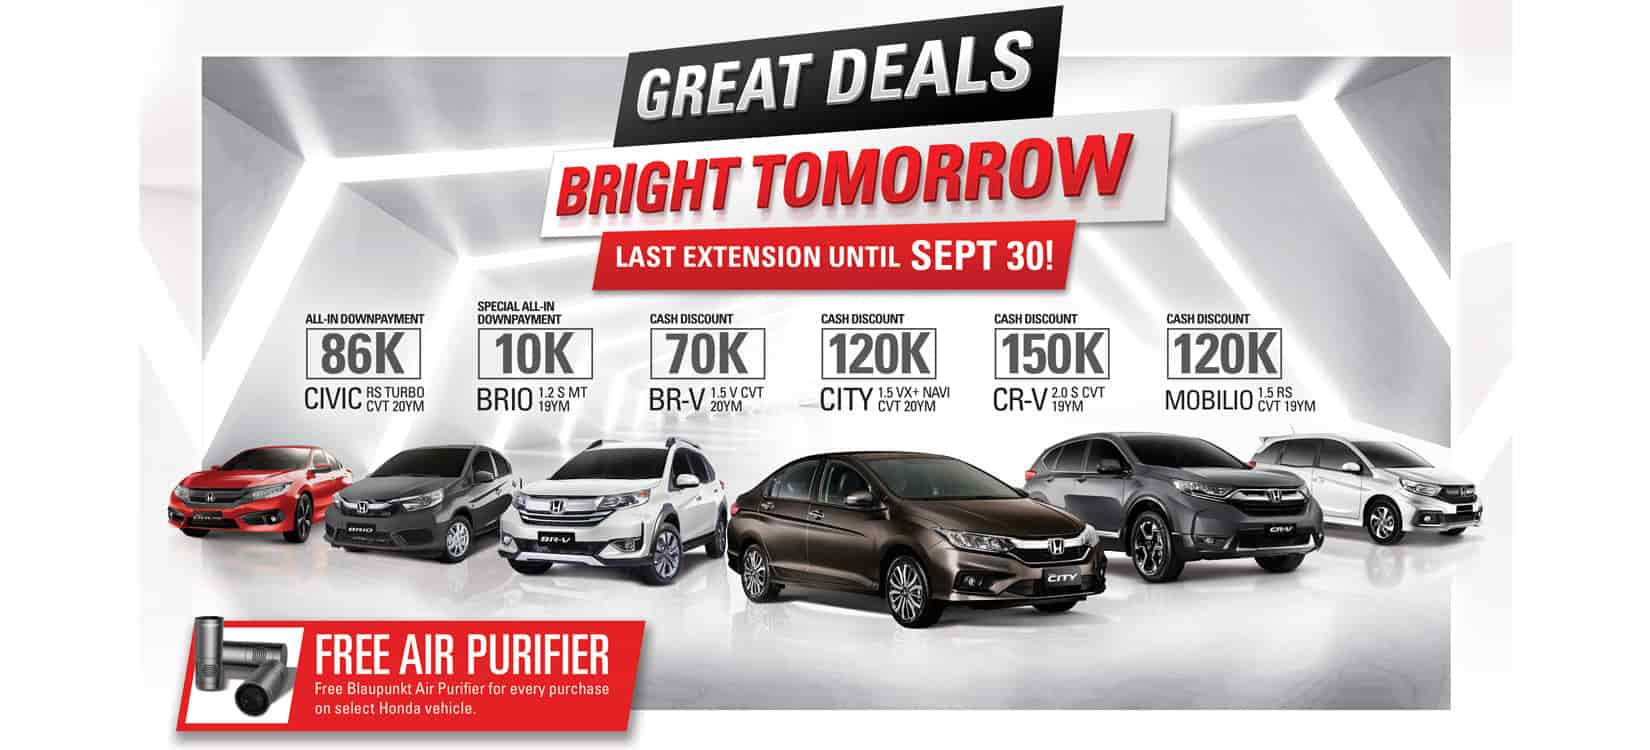 Honda announces final extension of huge cash discounts, other great deals this September